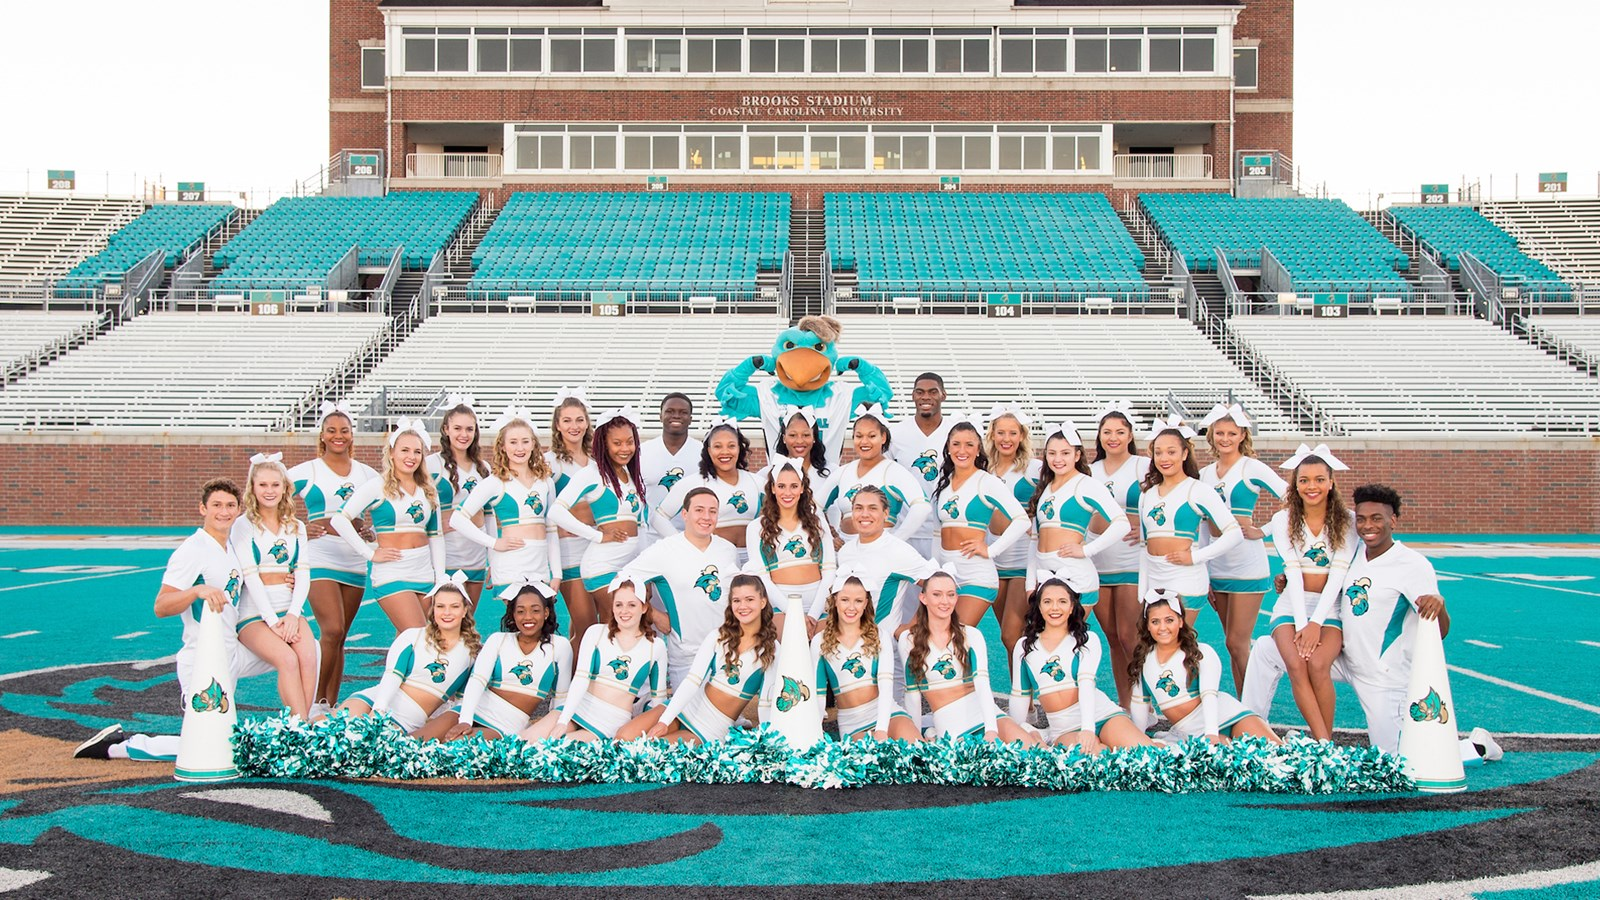 2018 19 Cheerleading Roster Coastal Carolina University Athletics